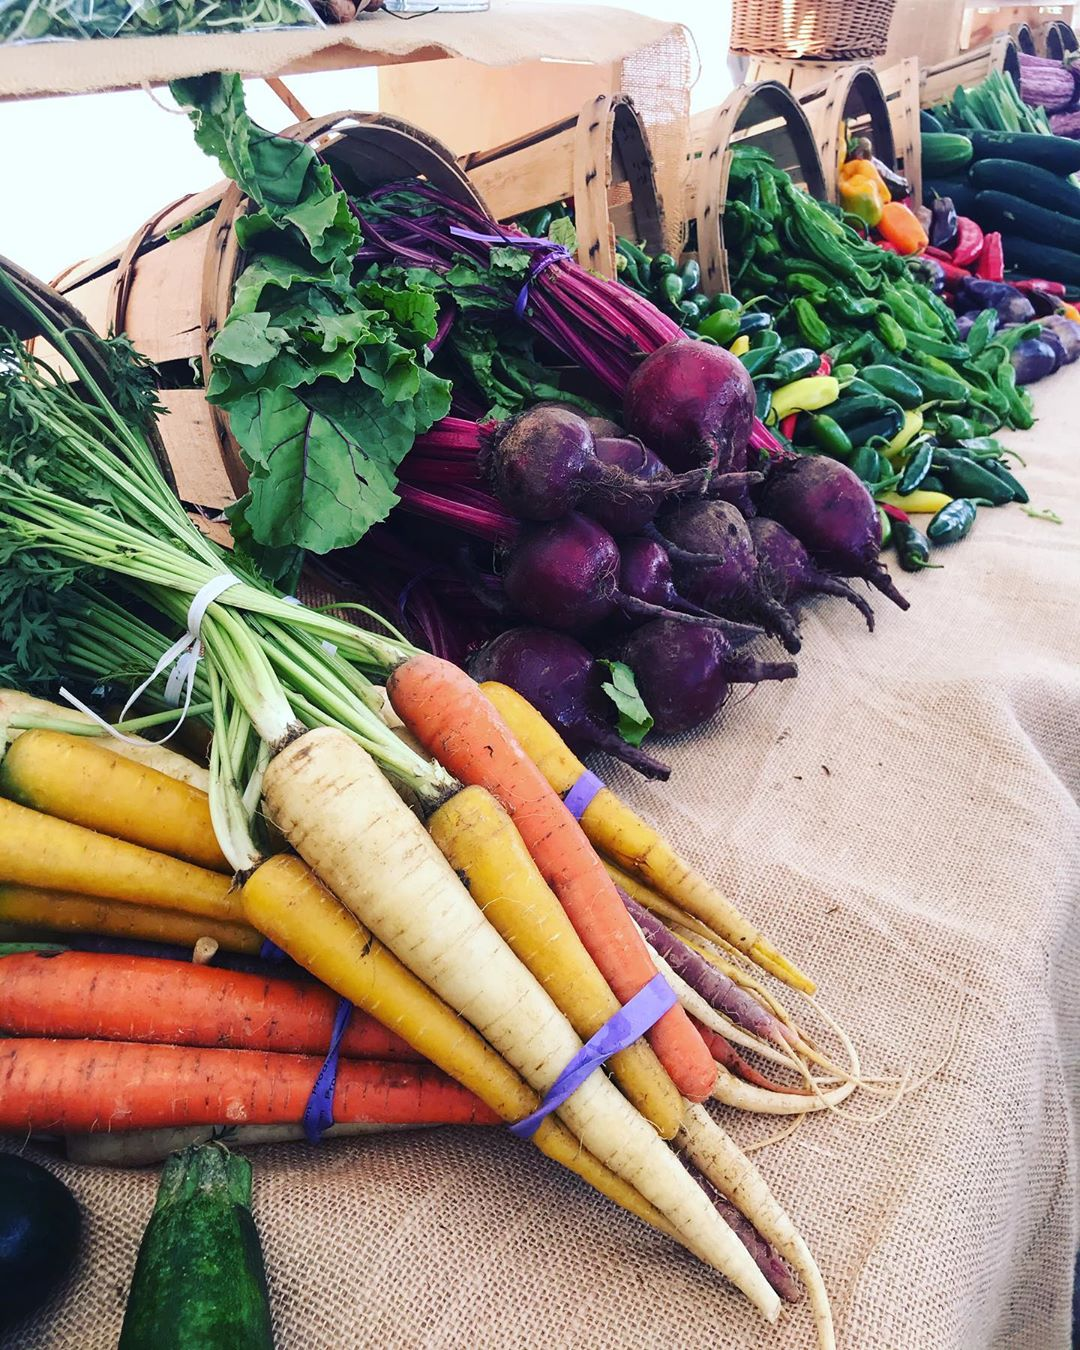 LBI NO WORDS NECESSARY at the Surf City Farmers Market 9am-Noon on Monday's through …